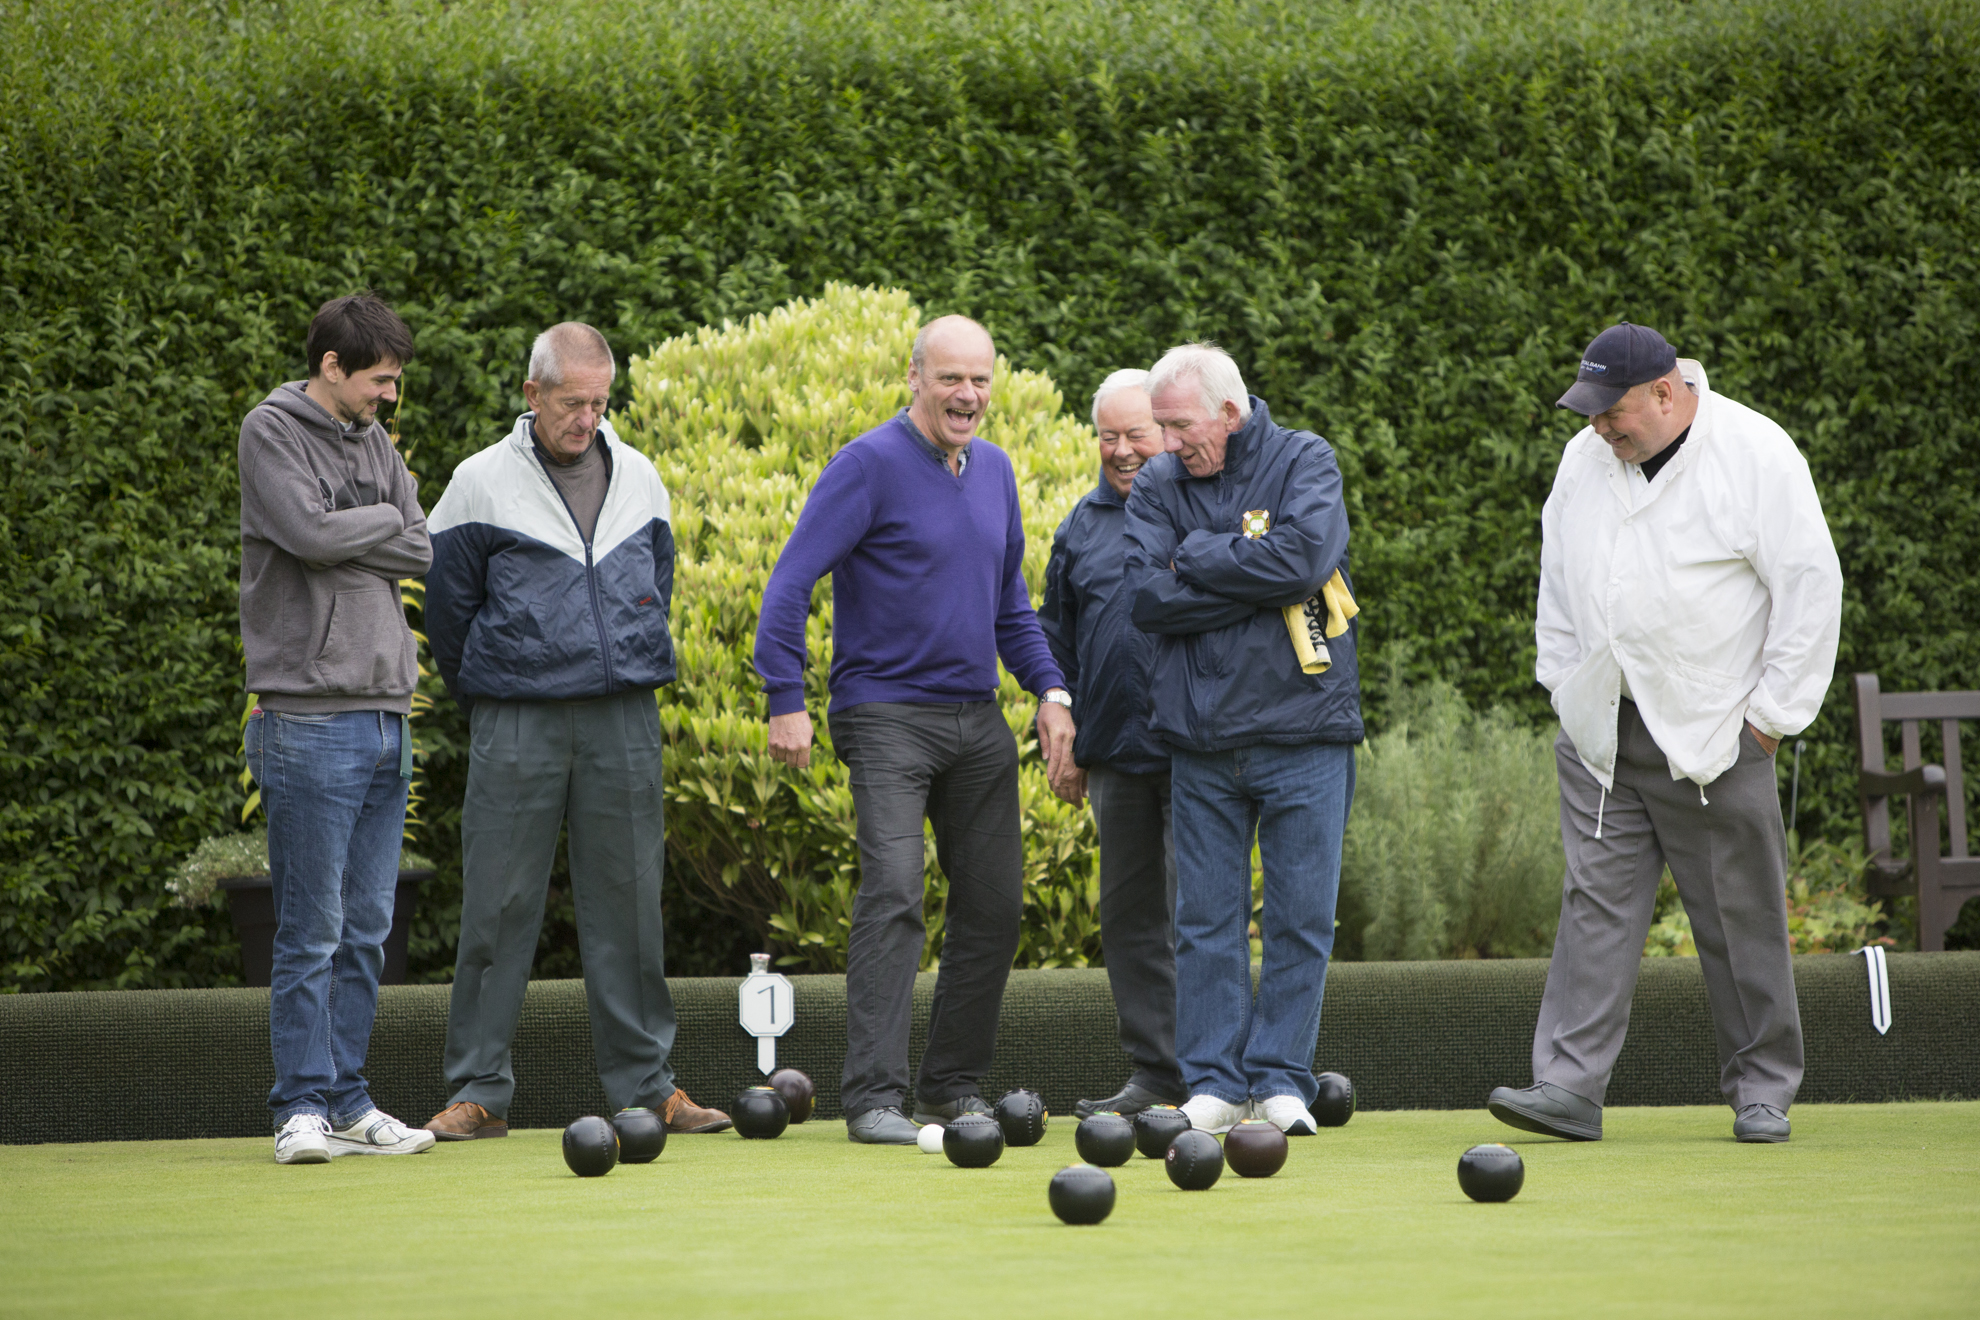 From left; Alexander Patrizio, Trevor Thomas, Peter Morris, Jack Young, Ian Cairns and Ken Williamson watch the progression of the bowls while playing during hat night at Maitland Bowling Club in Edinburgh.